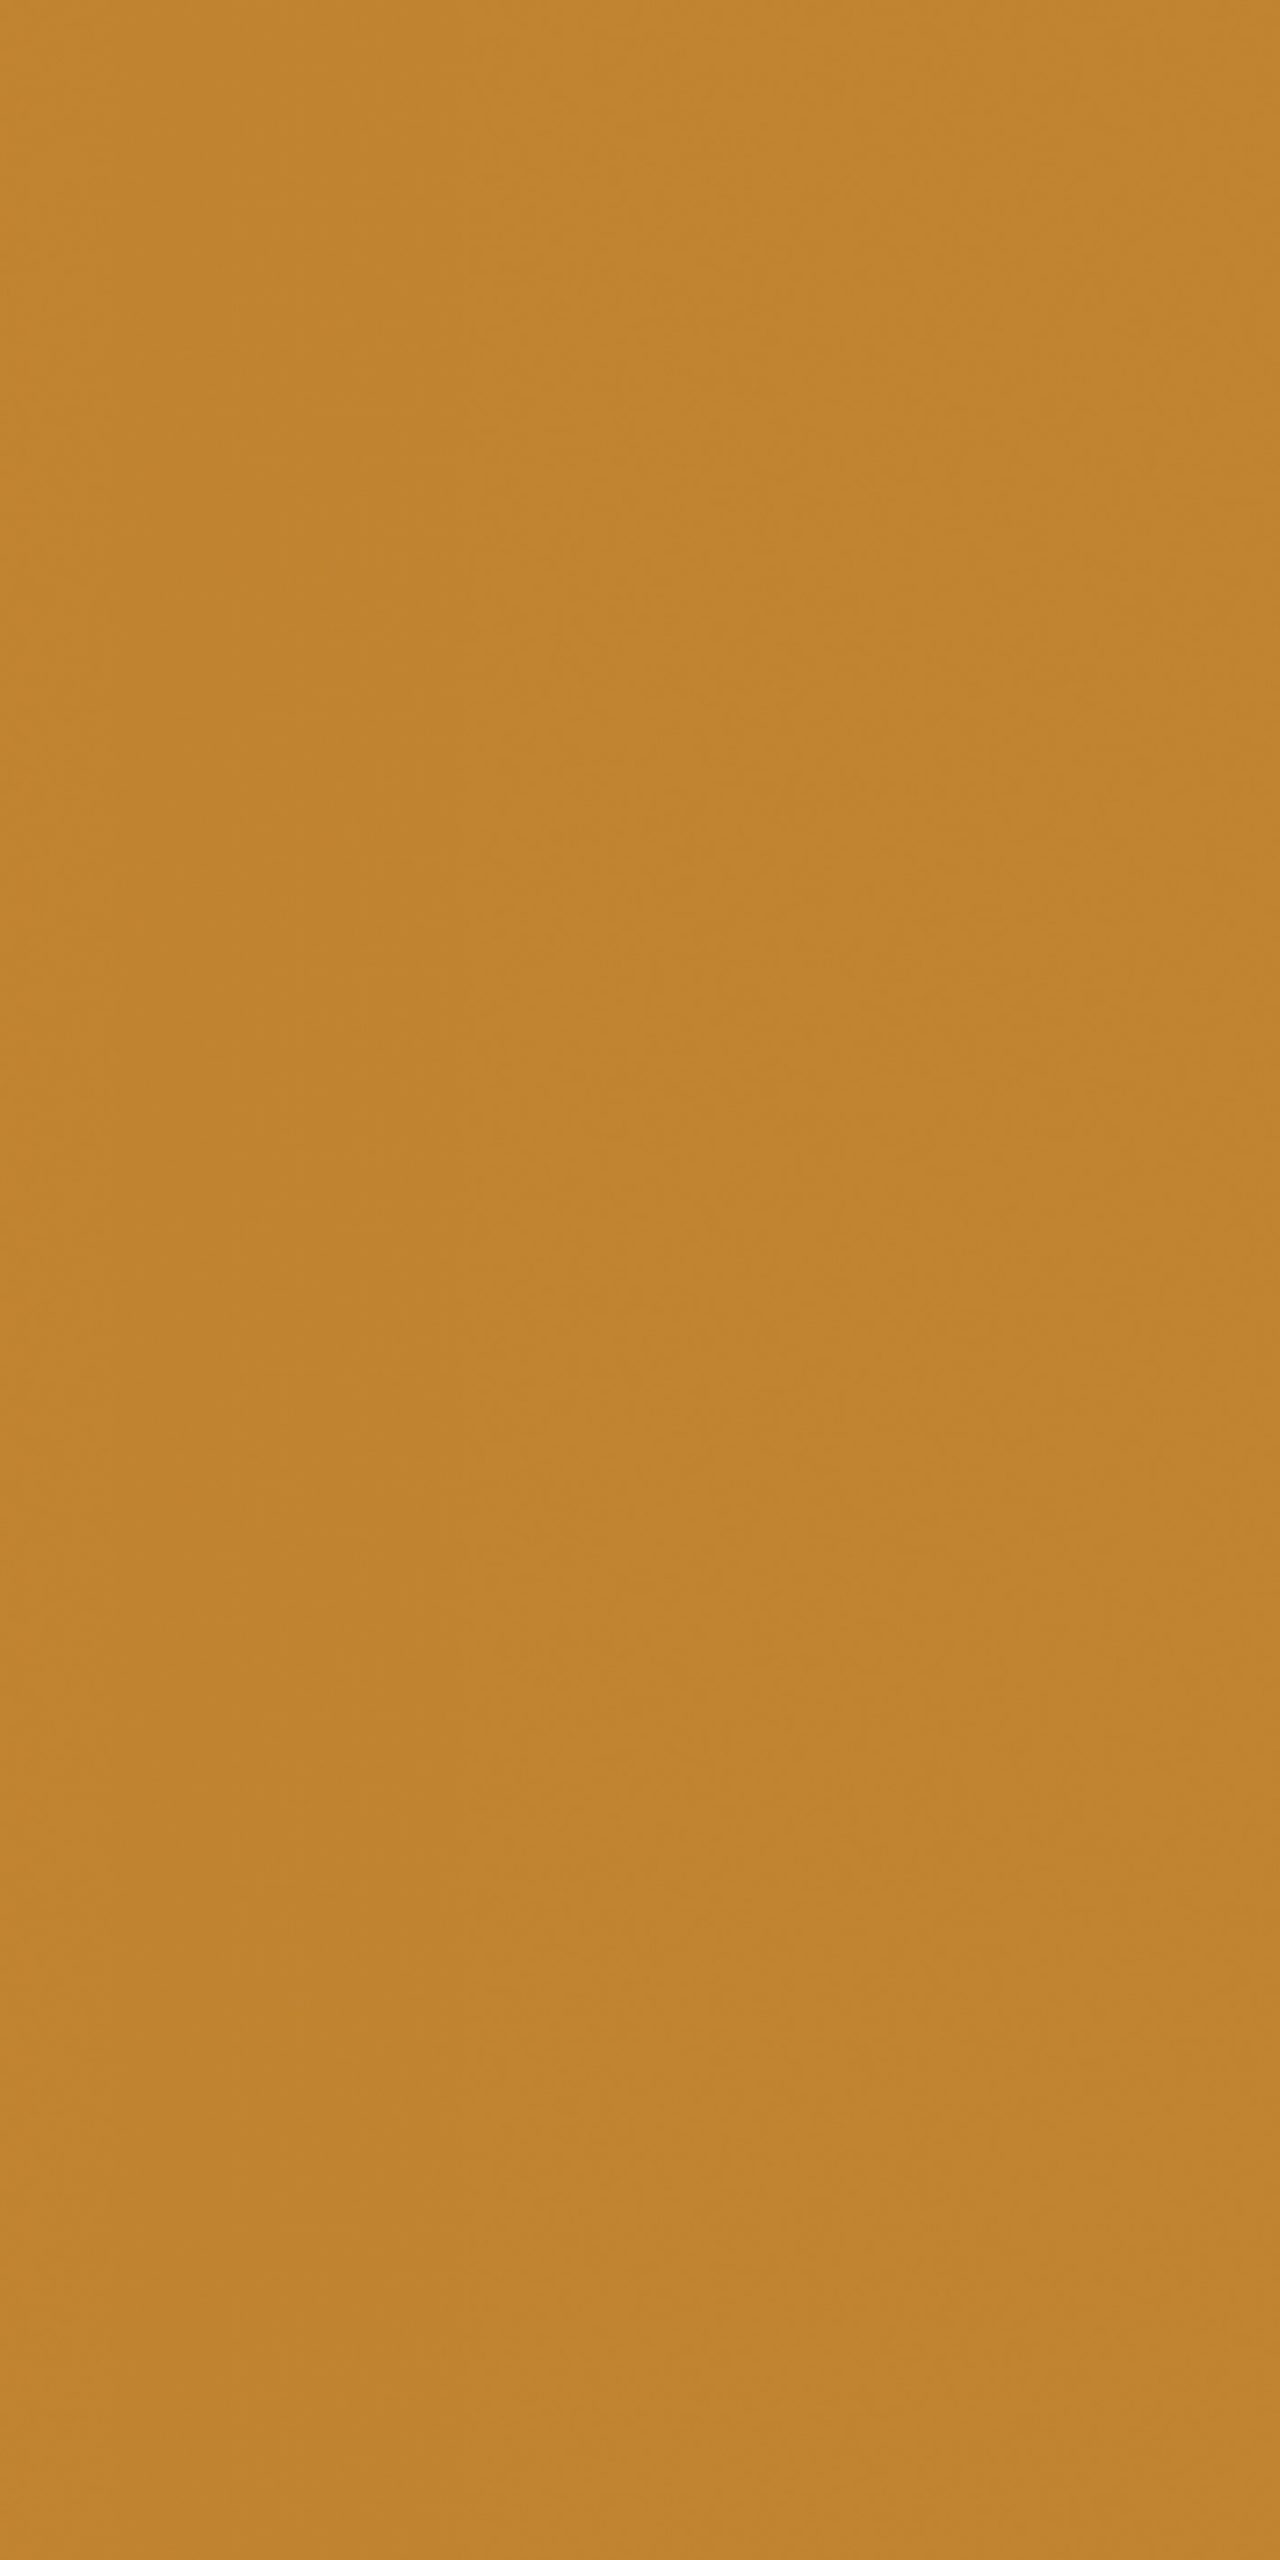 Buildtech 2.0 Bold Colors Mustard Glossy 6mm 60 x 120